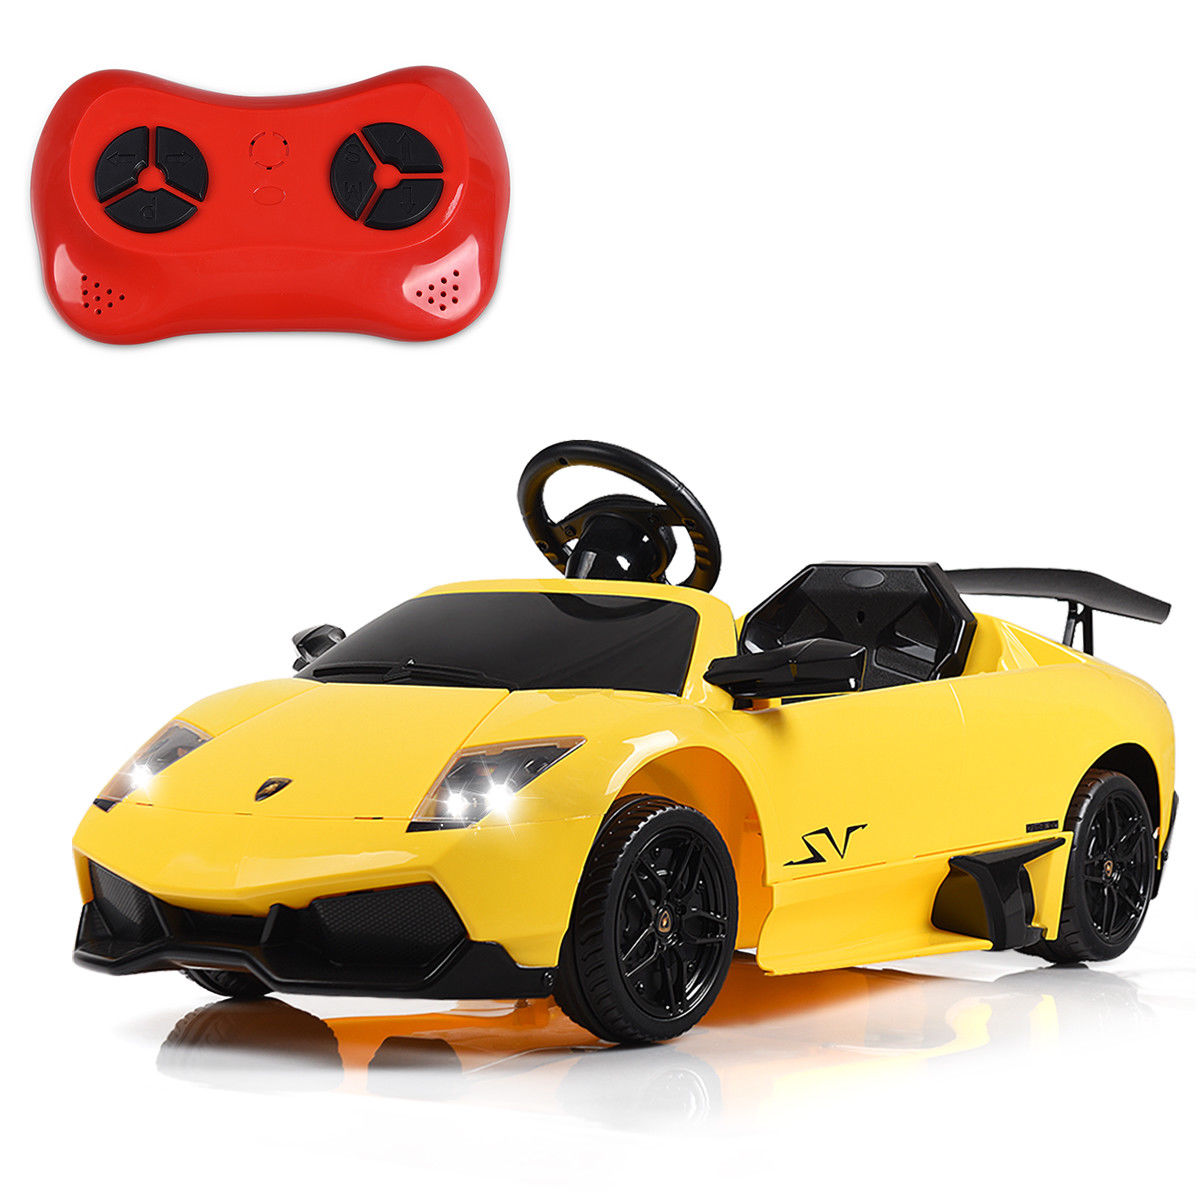 Gymax 12V Lamborghini Murciealgo Licensed Electric Kids Ride On Car RC w/ LED Lights